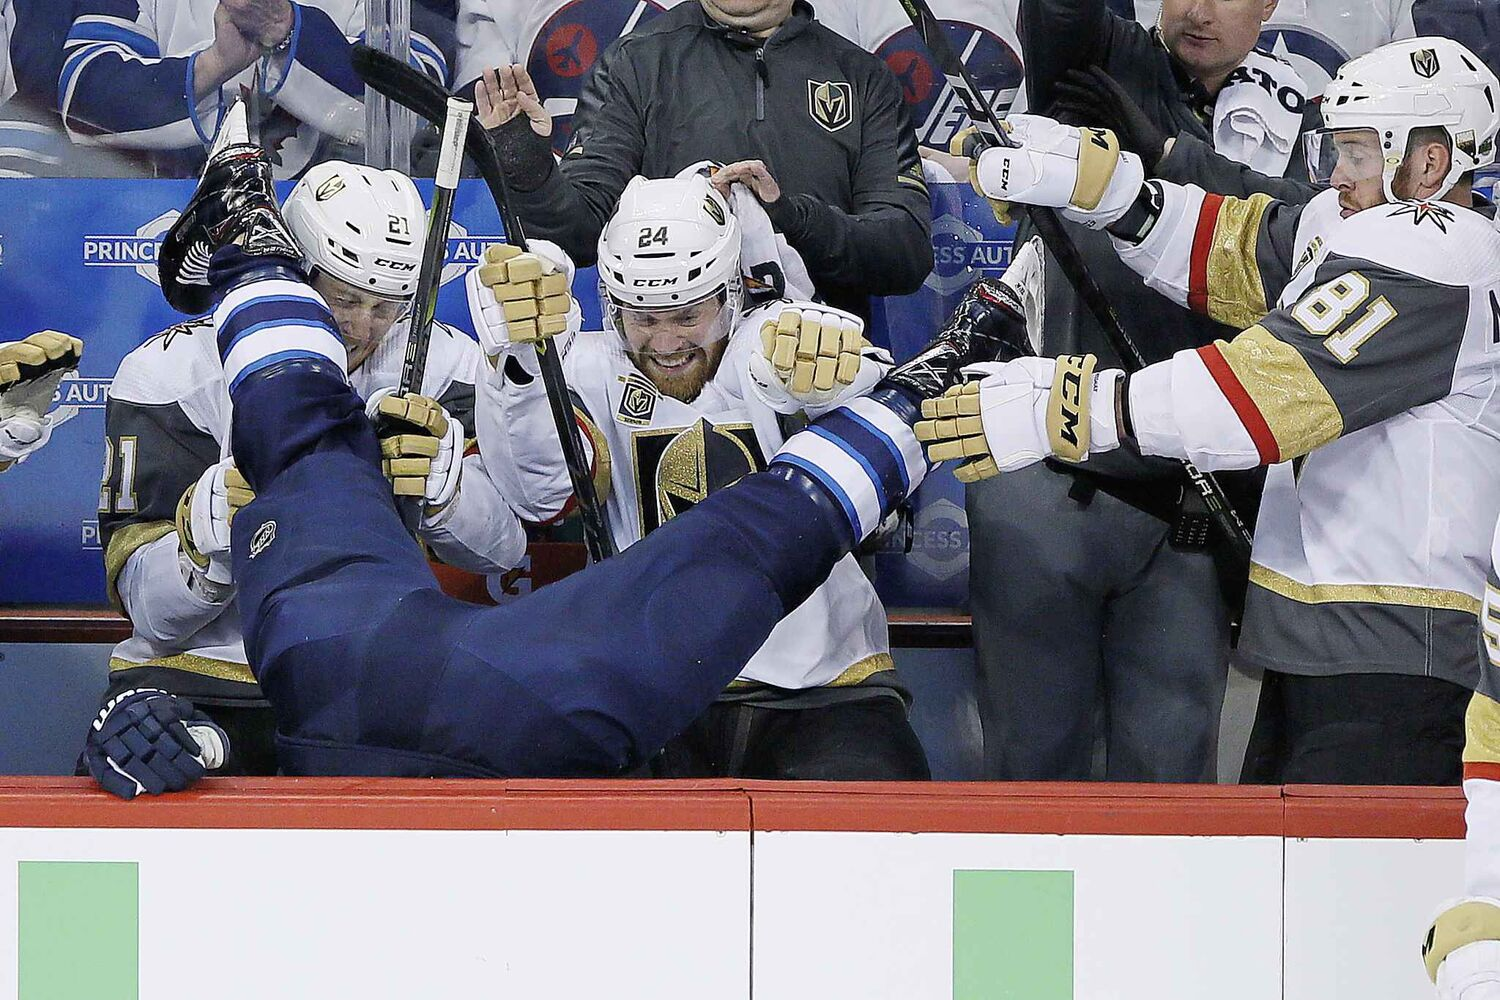 JOHN WOODS / THE CANADIAN PRESS</p><p>Winnipeg Jets' Blake Wheeler (26) gets dumped over the Vegas boards by Vegas Golden Knights' Ryan Reaves (75) in front of Cody Eakin (21), Oscar Lindberg (24) and Jonathan Marchessault (81) during first period of game one action in the NHL Western Conference Final in Winnipeg on Saturday, May 12, 2018.</p> (CP)